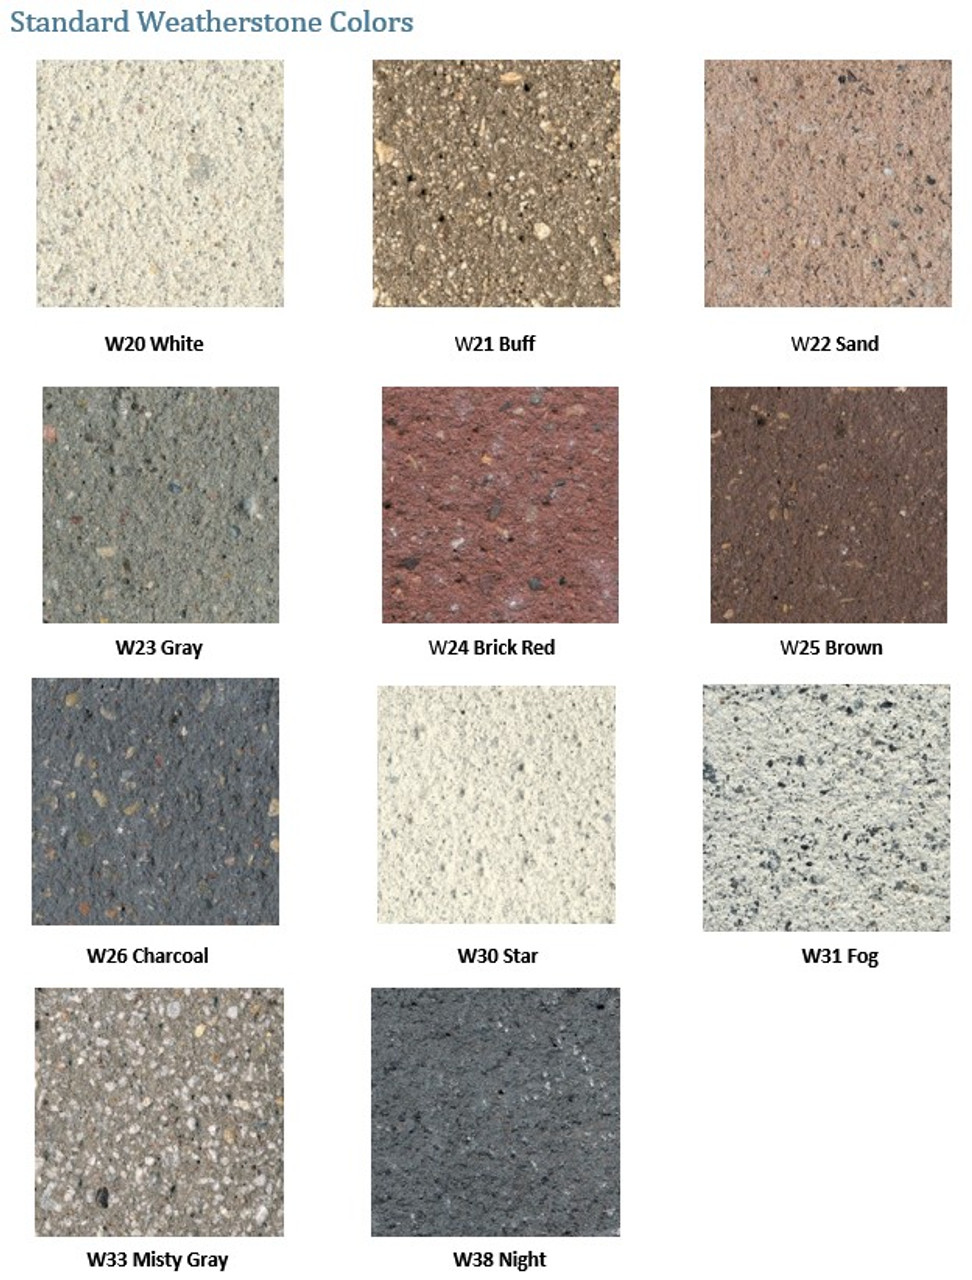 Weatherstone Colors